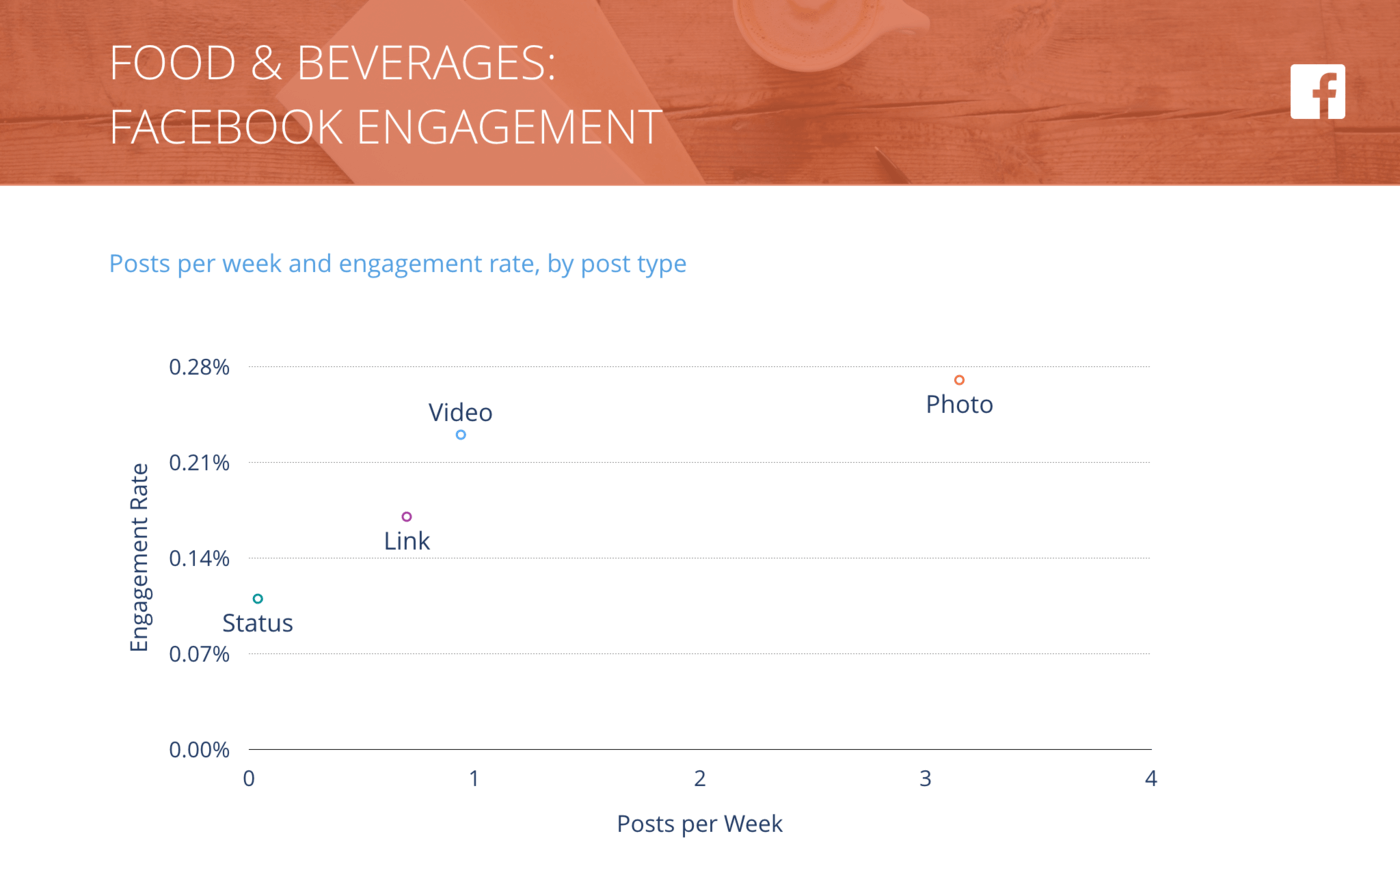 slide of Facebook Posts per Week vs. Engagement Rate per Post, Food & Beverages